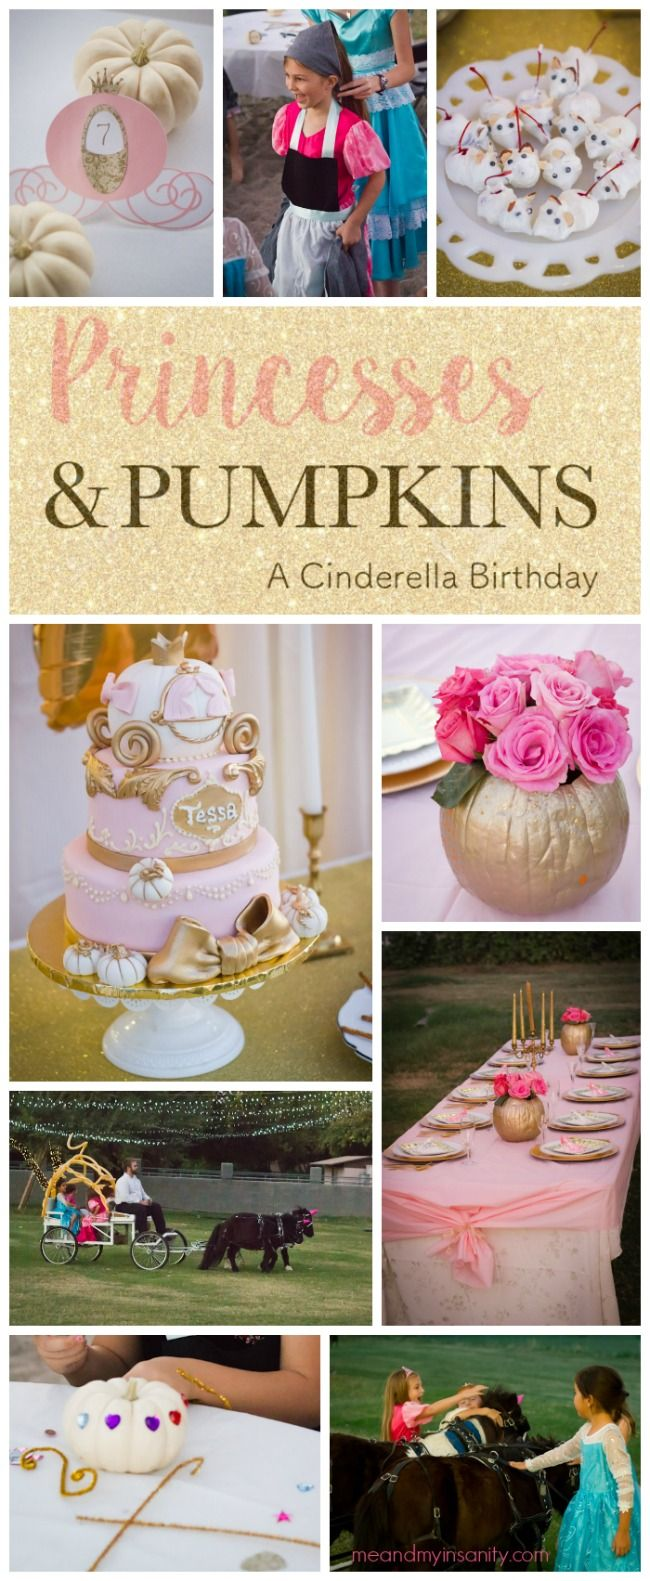 132 best Princesses and Pumpkins Birthday images on Pinterest